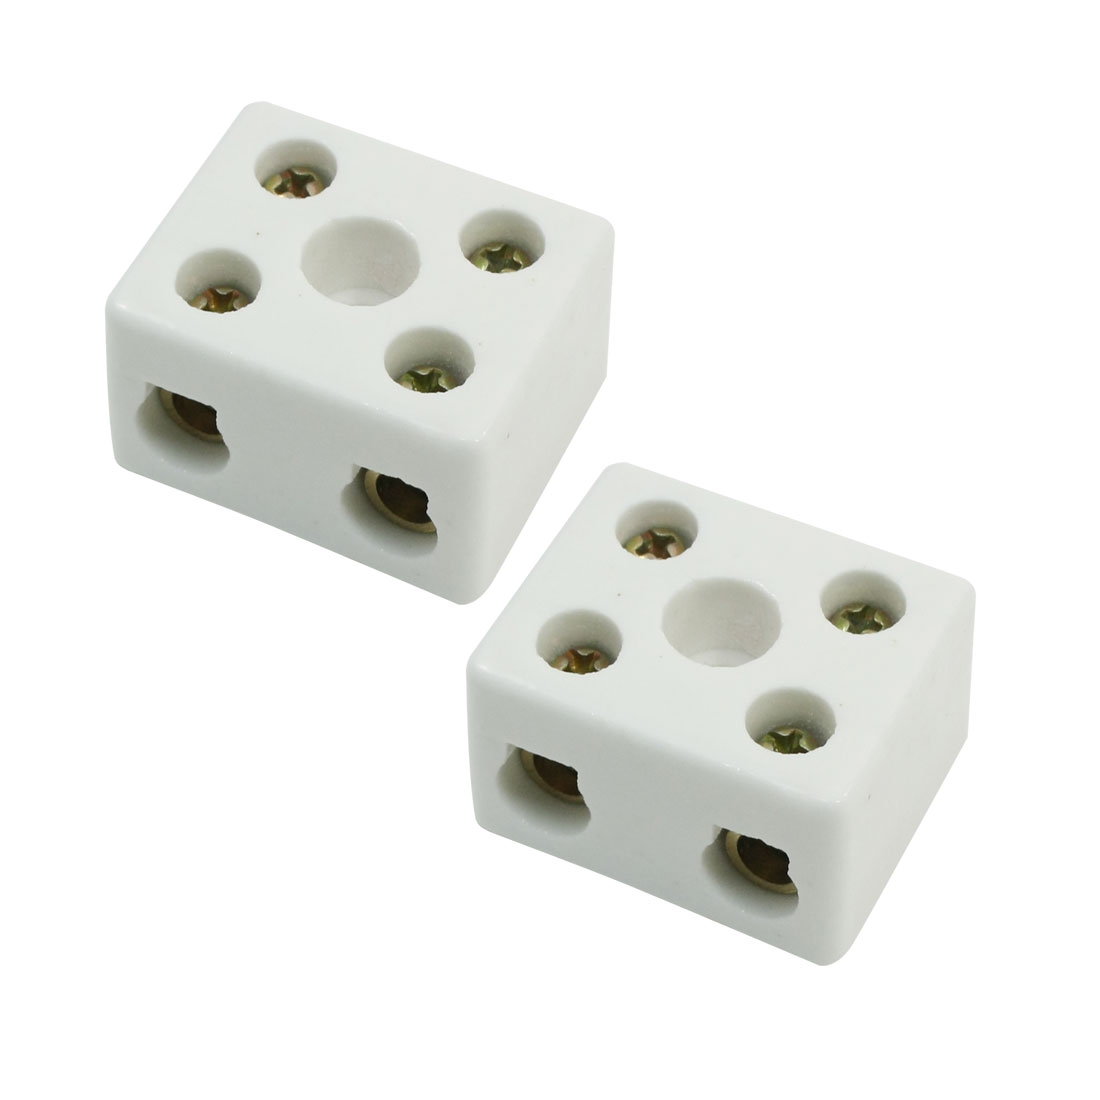 5A 2 Pole Insulation Connector Porcelain Ceramic Terminal Block 2W5H 2Pcs